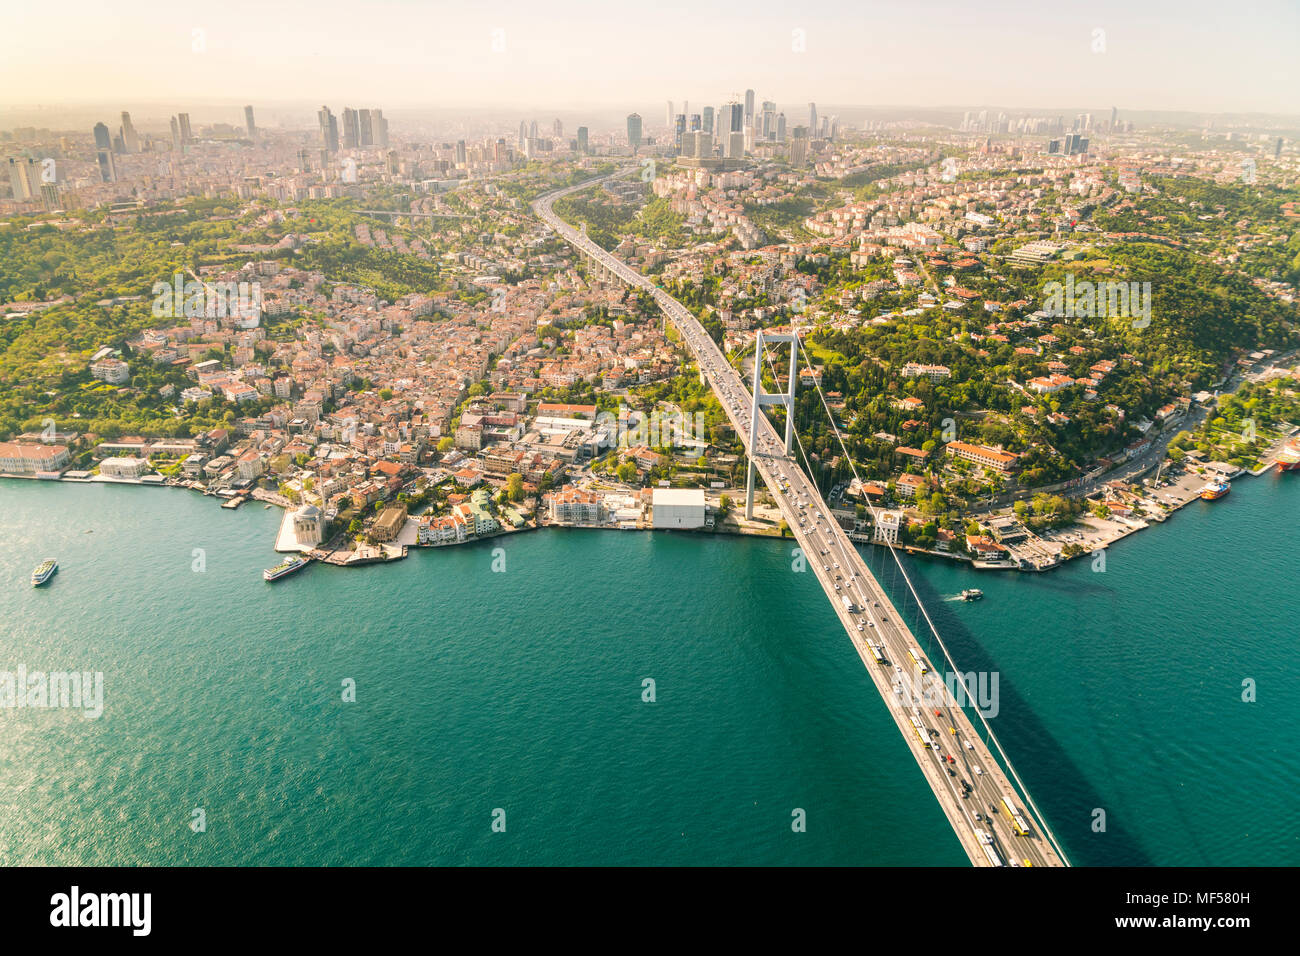 Turkey, Bosporus bridge and the european Istanbul in the background - Stock Image